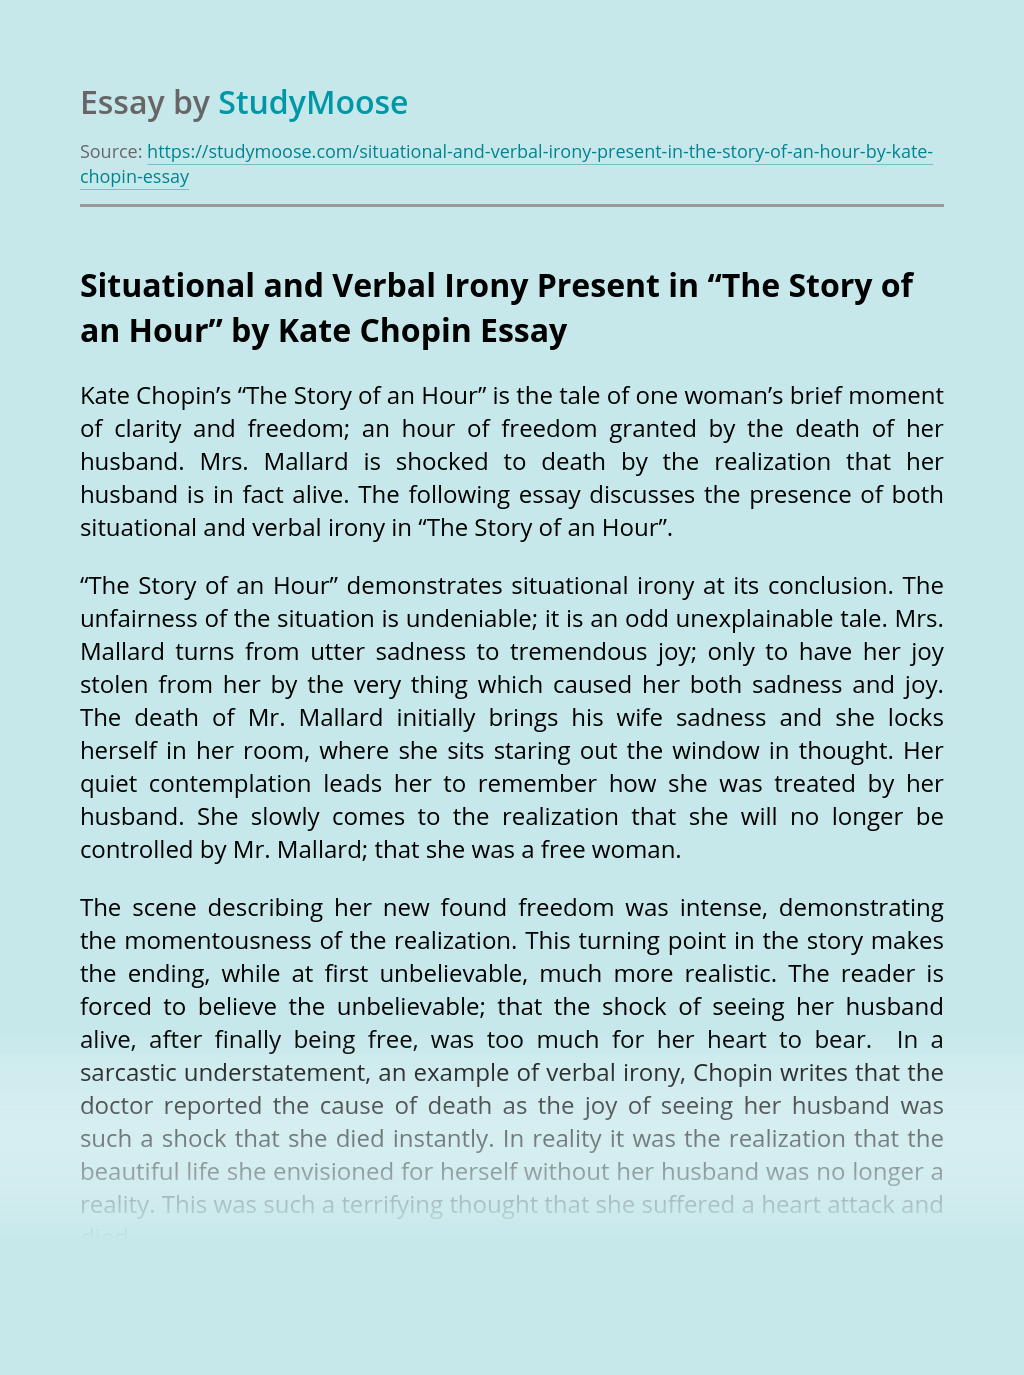 """Situational and Verbal Irony Present in """"The Story of an Hour"""" by Kate Chopin"""